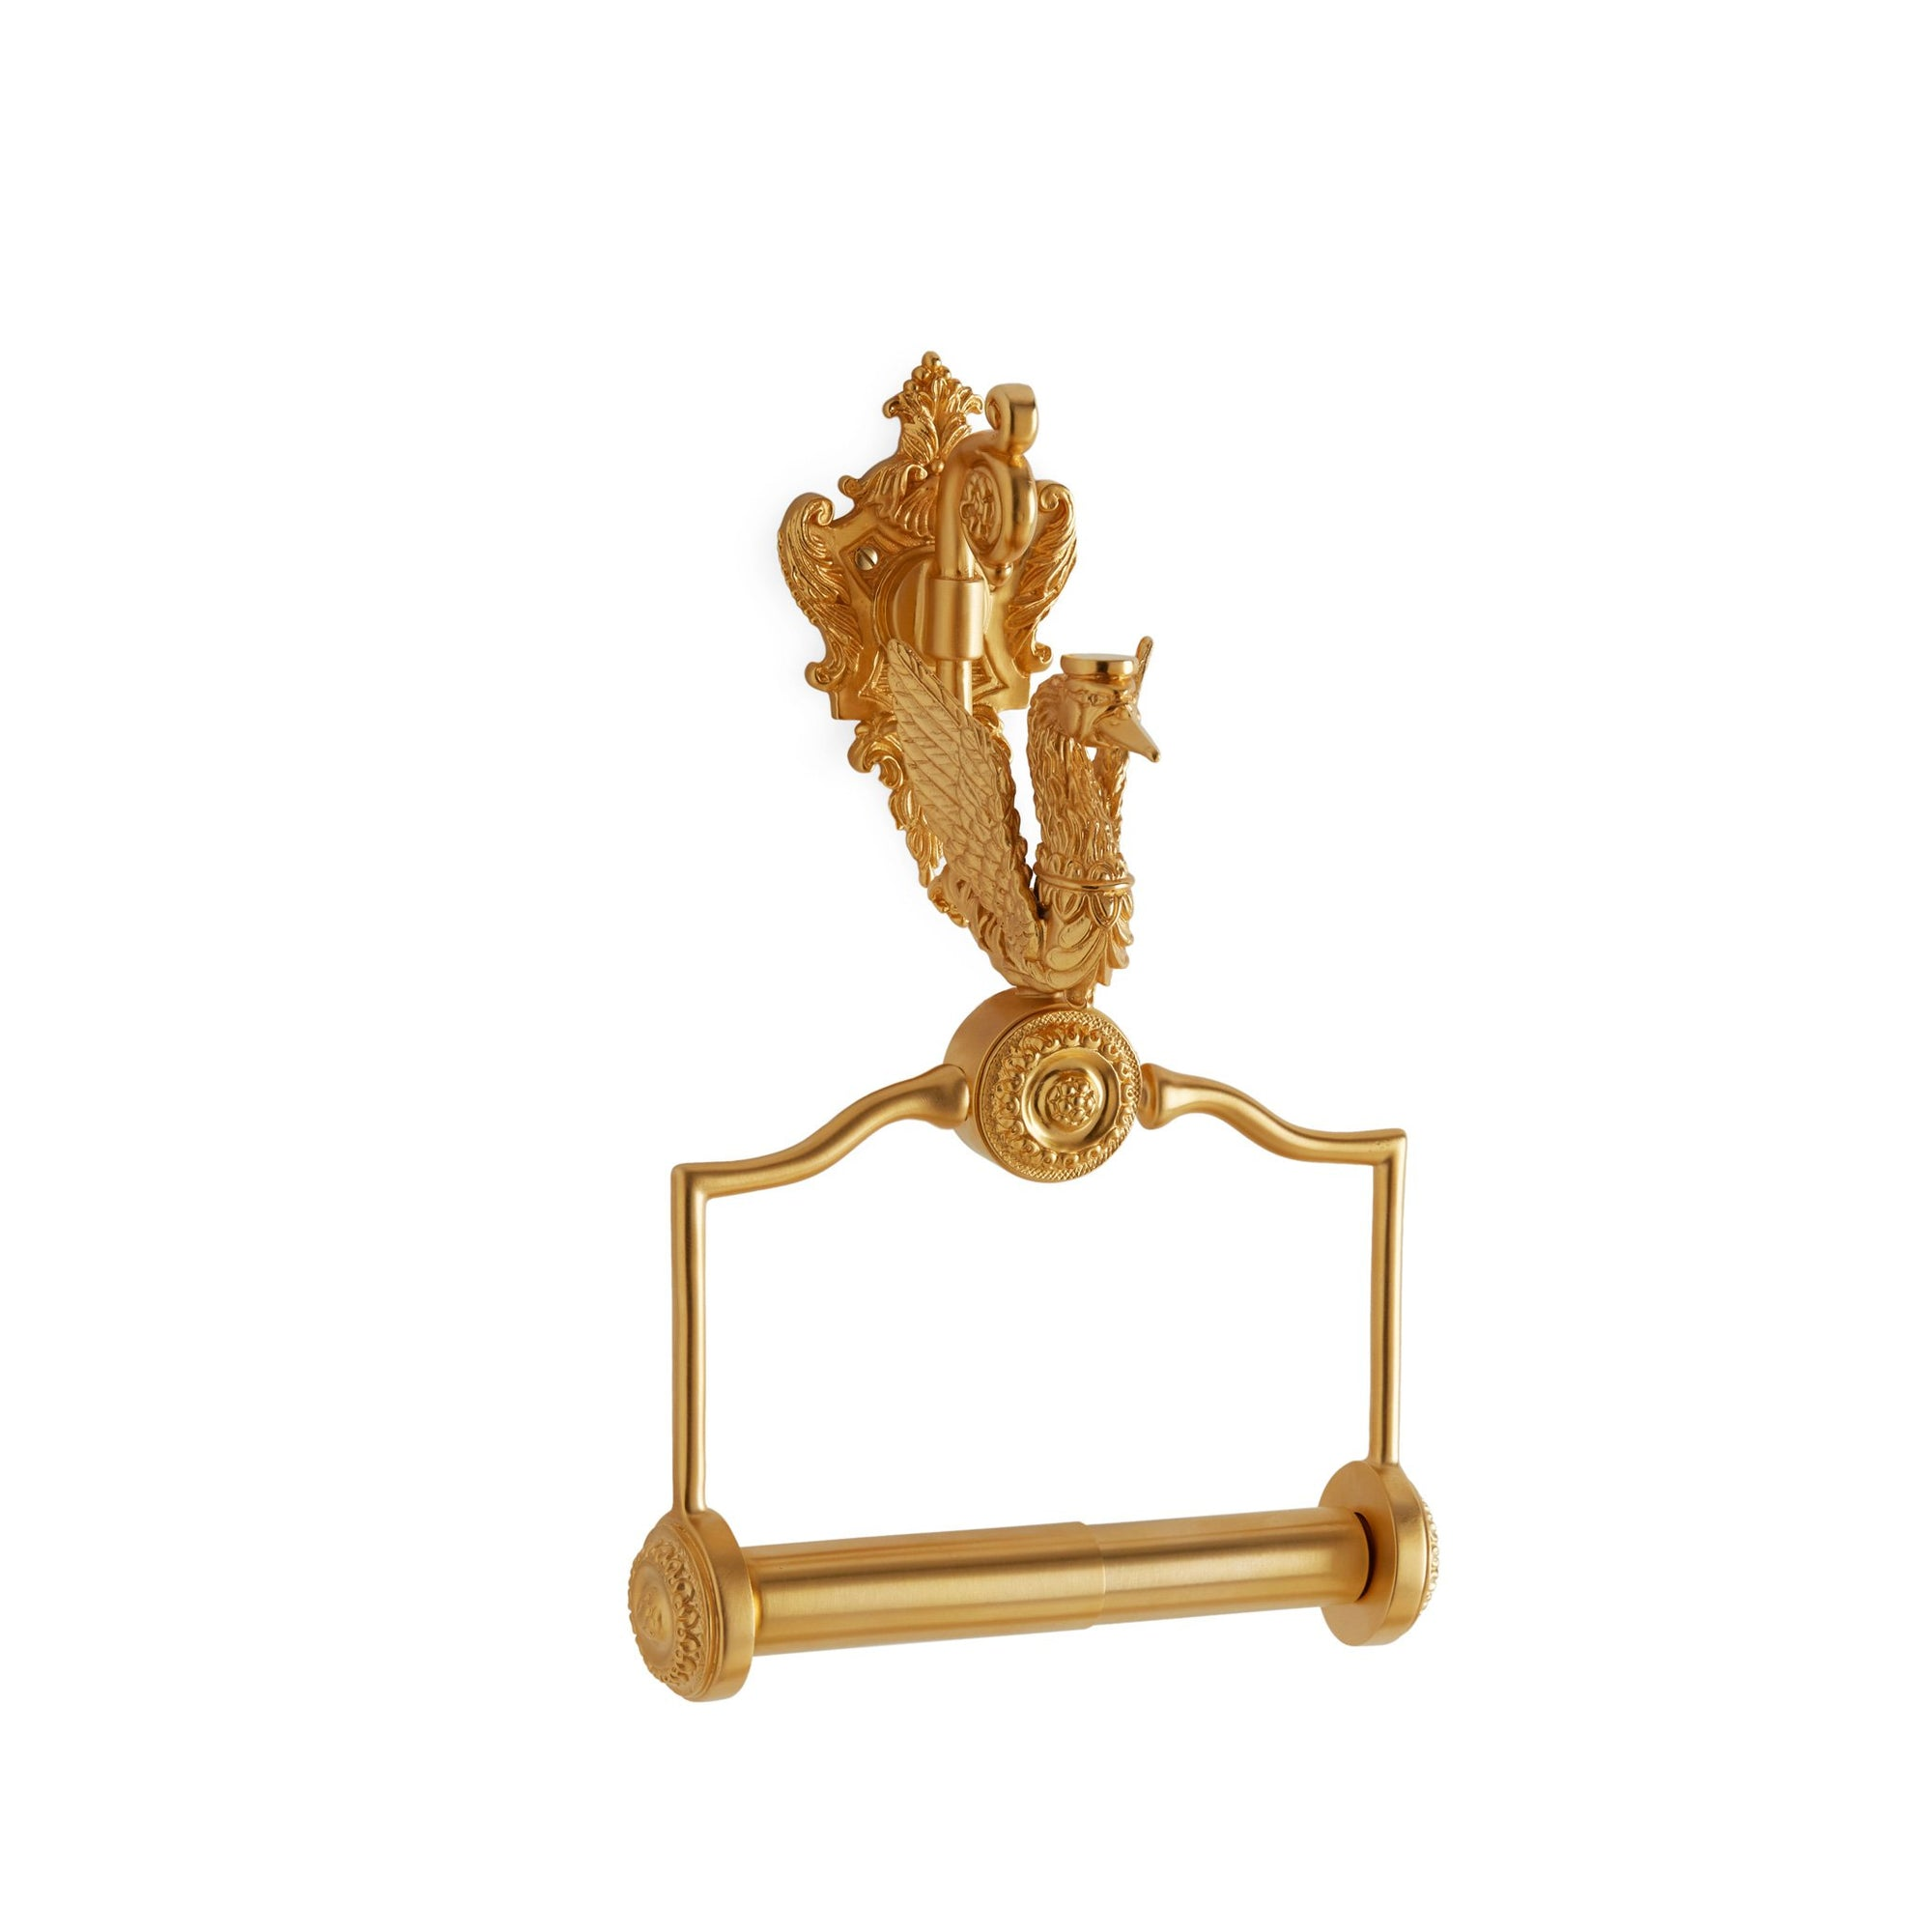 3511-GP Sherle Wagner International Swan Paper Holder in Gold Plate metal finish